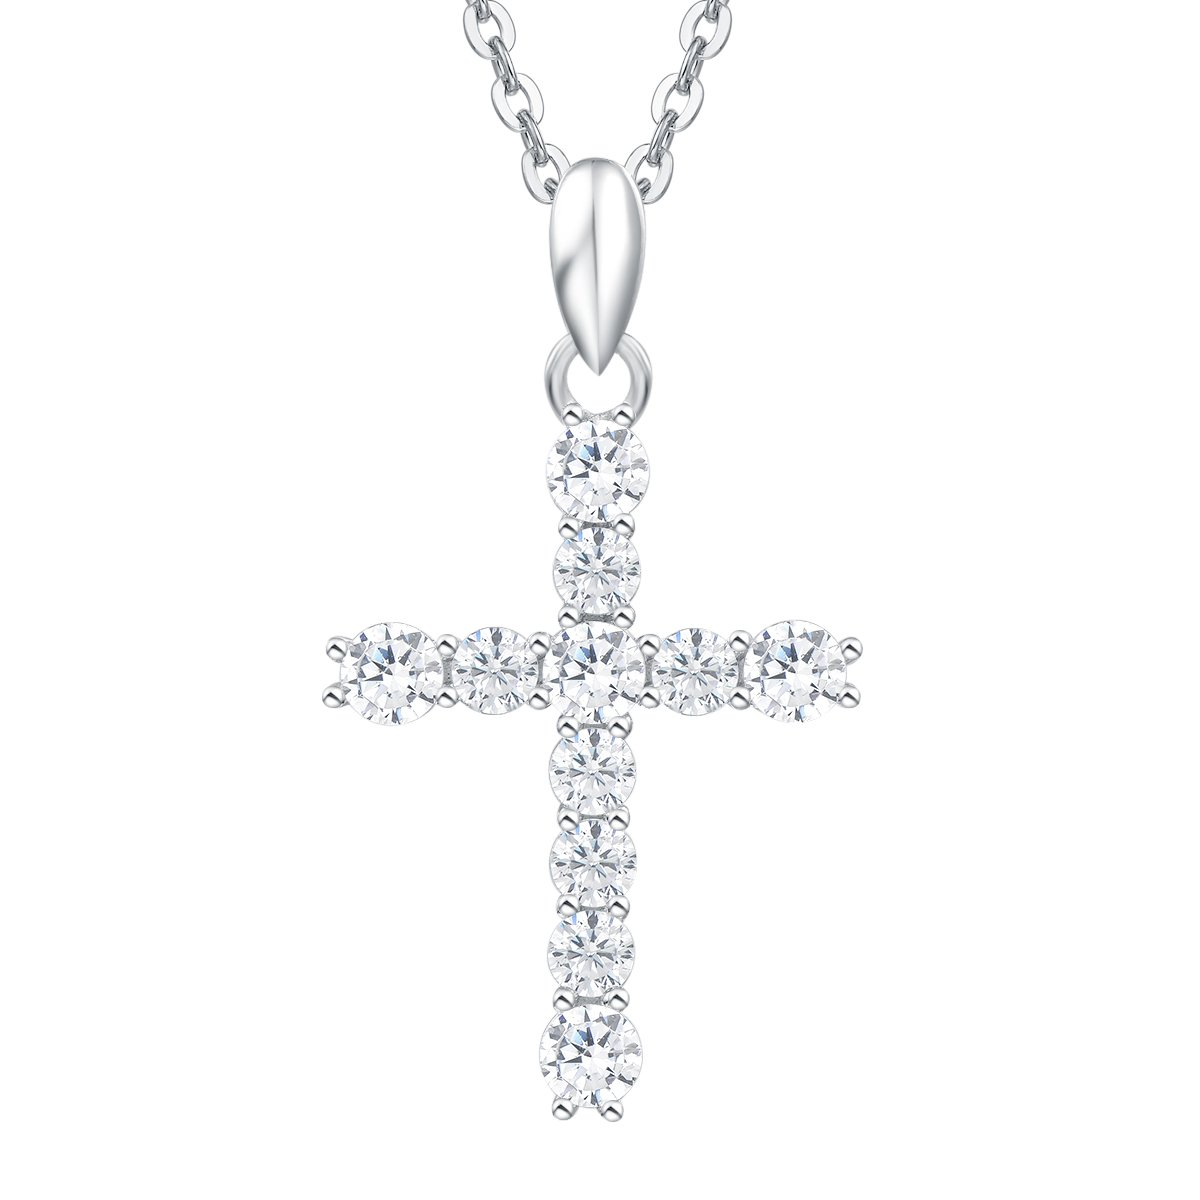 Sterling Silver Prong Setting Cubic Zirconia Cross Pendant Necklace for Women Girls with 18 Inch Sterling Silver Chain